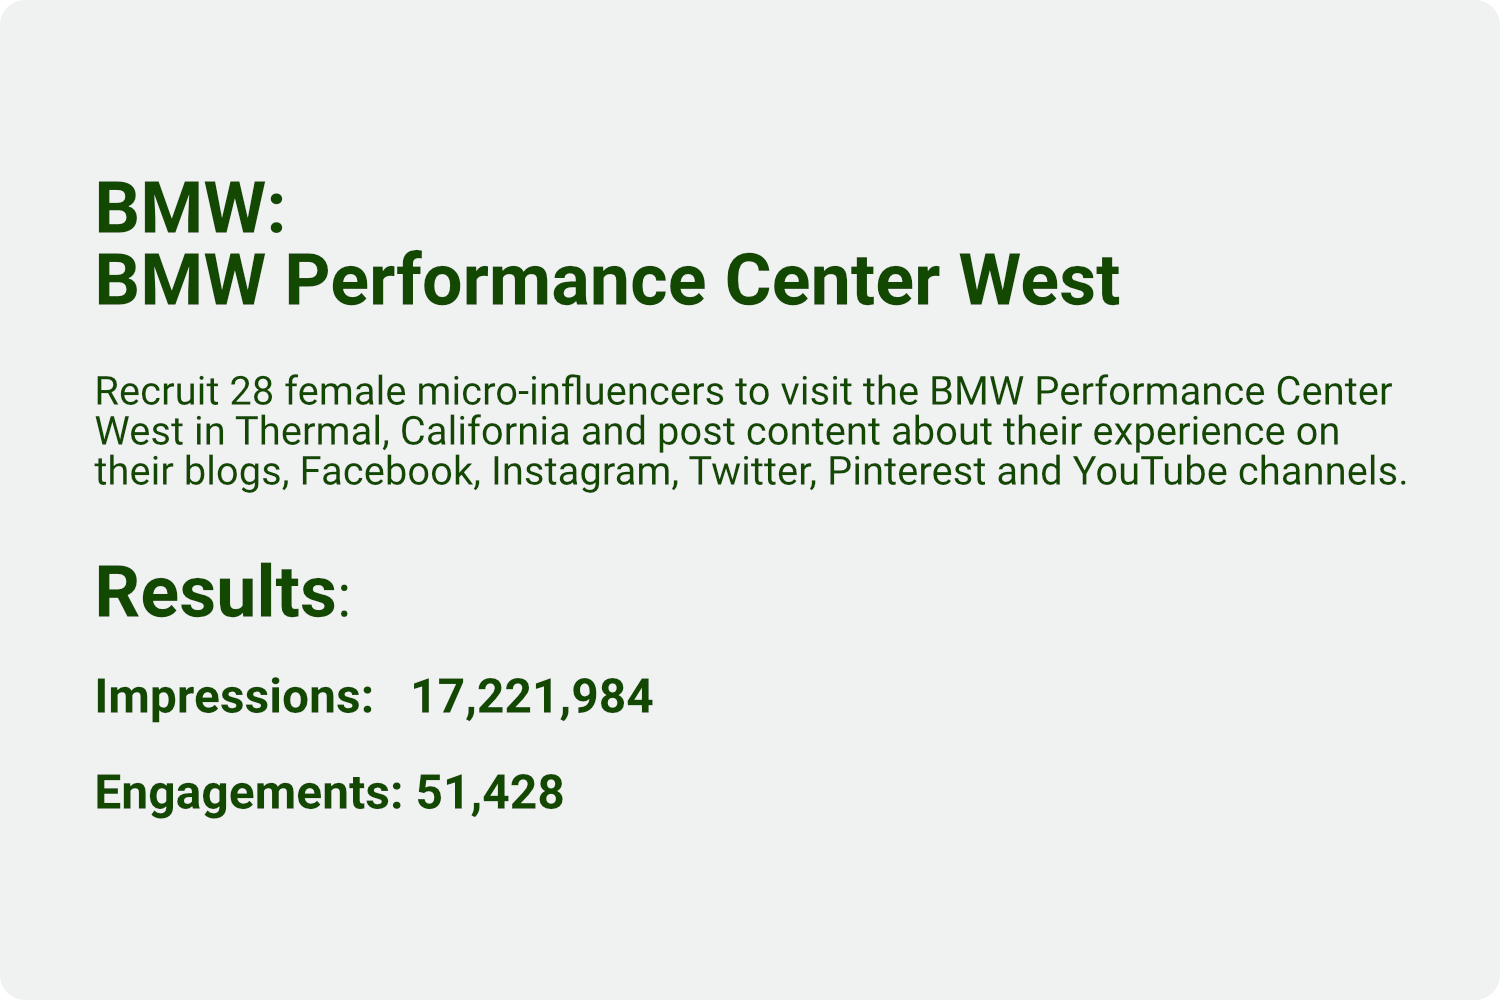 BMW Performance Center West campaign results.